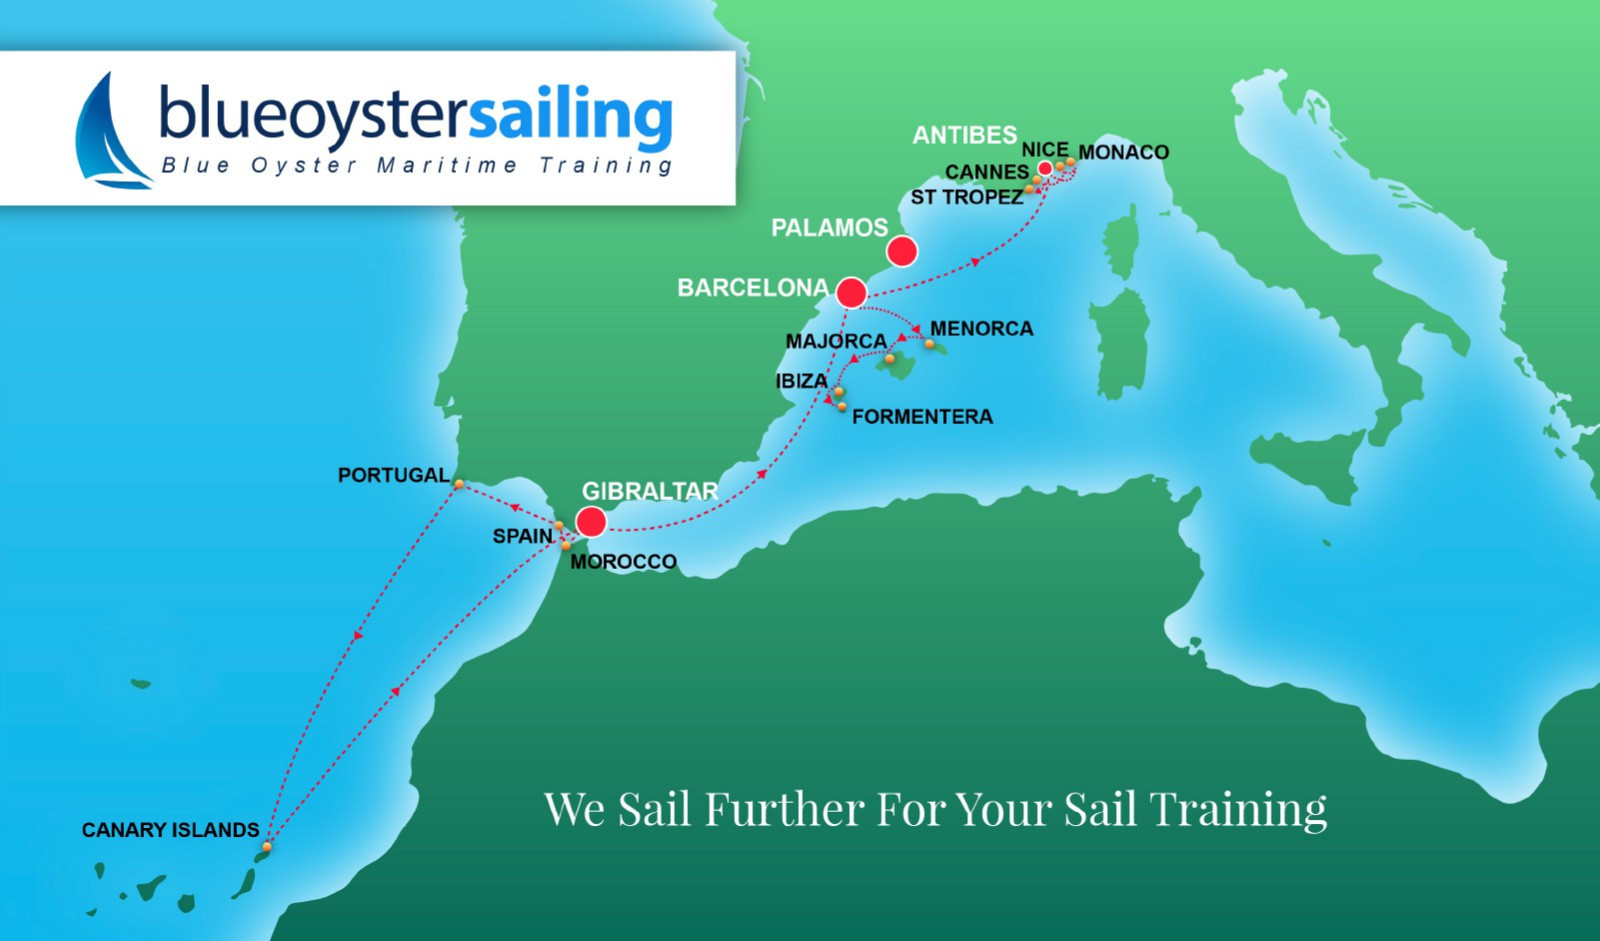 Blue Oyster Sailing Map Image